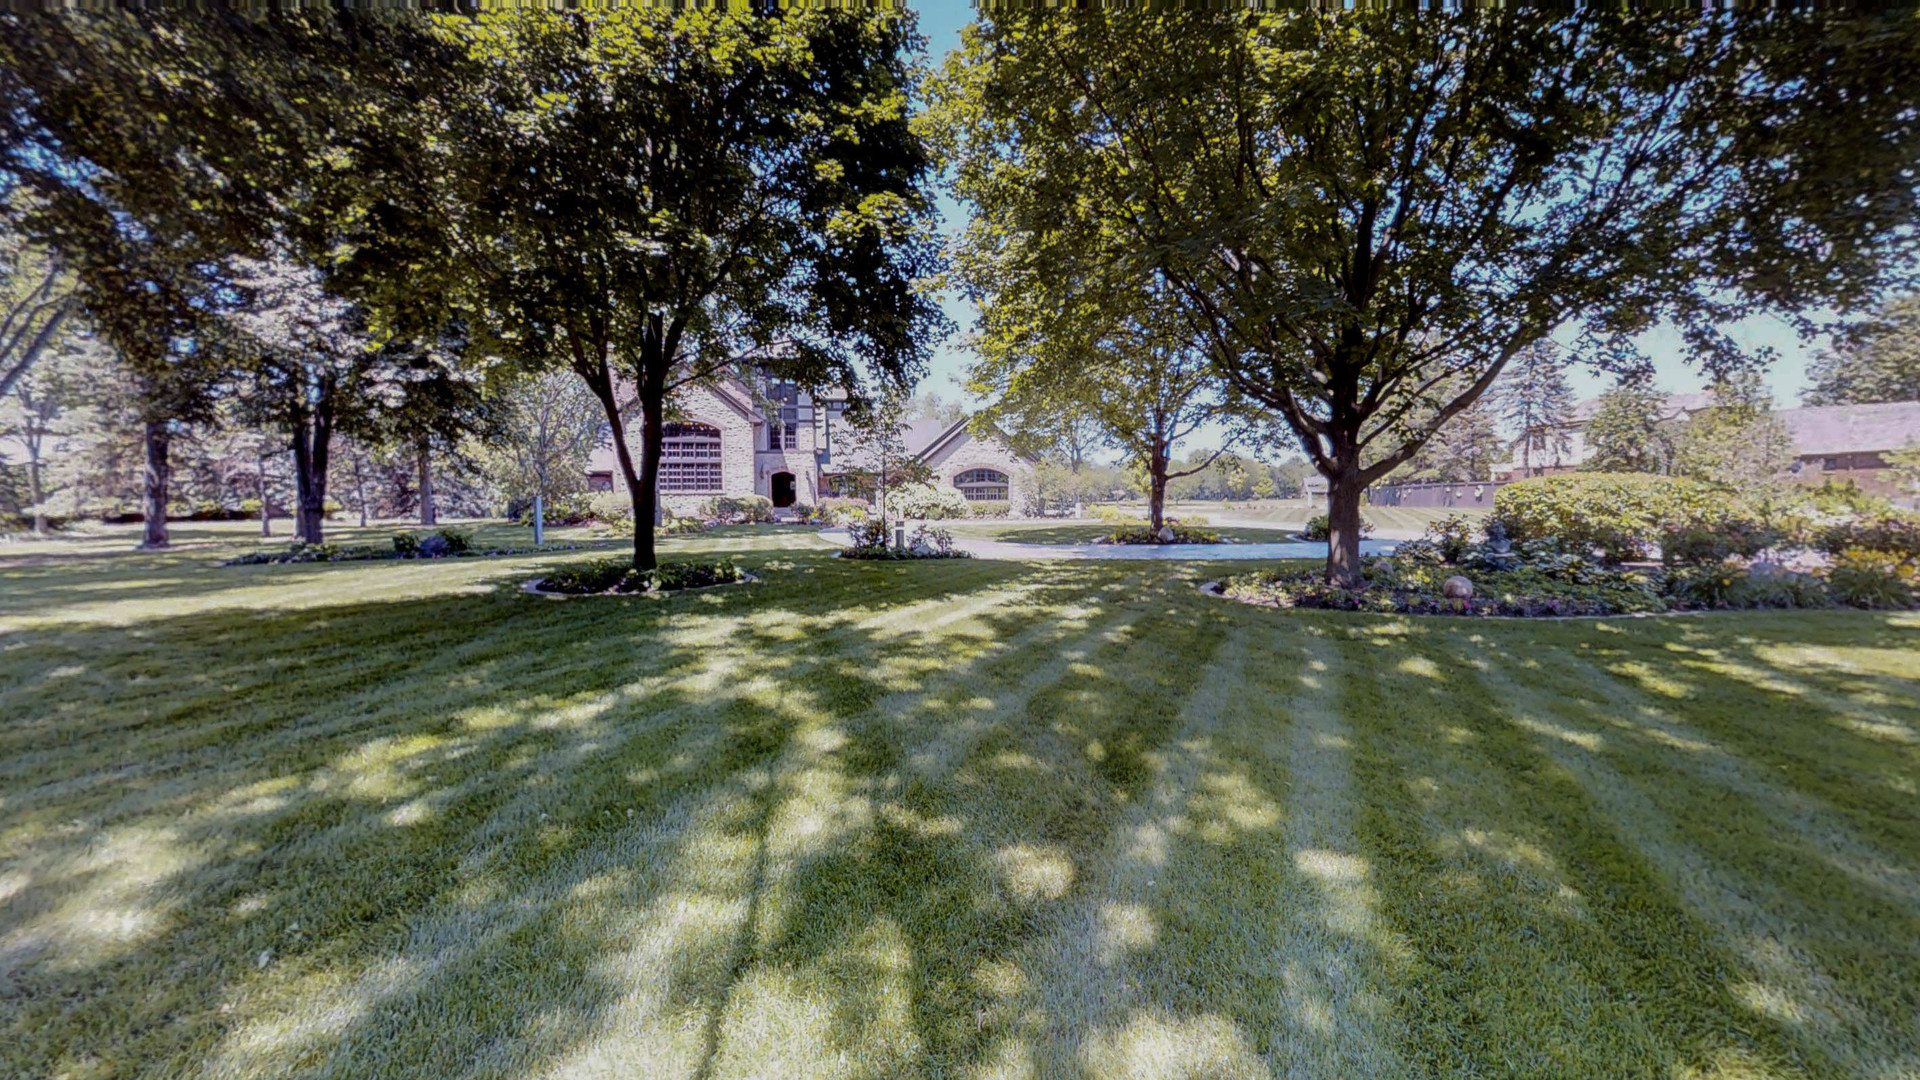 Kansas harper county danville - Champaign Il Waterfront Real Estate 3yd Mredil 09649047